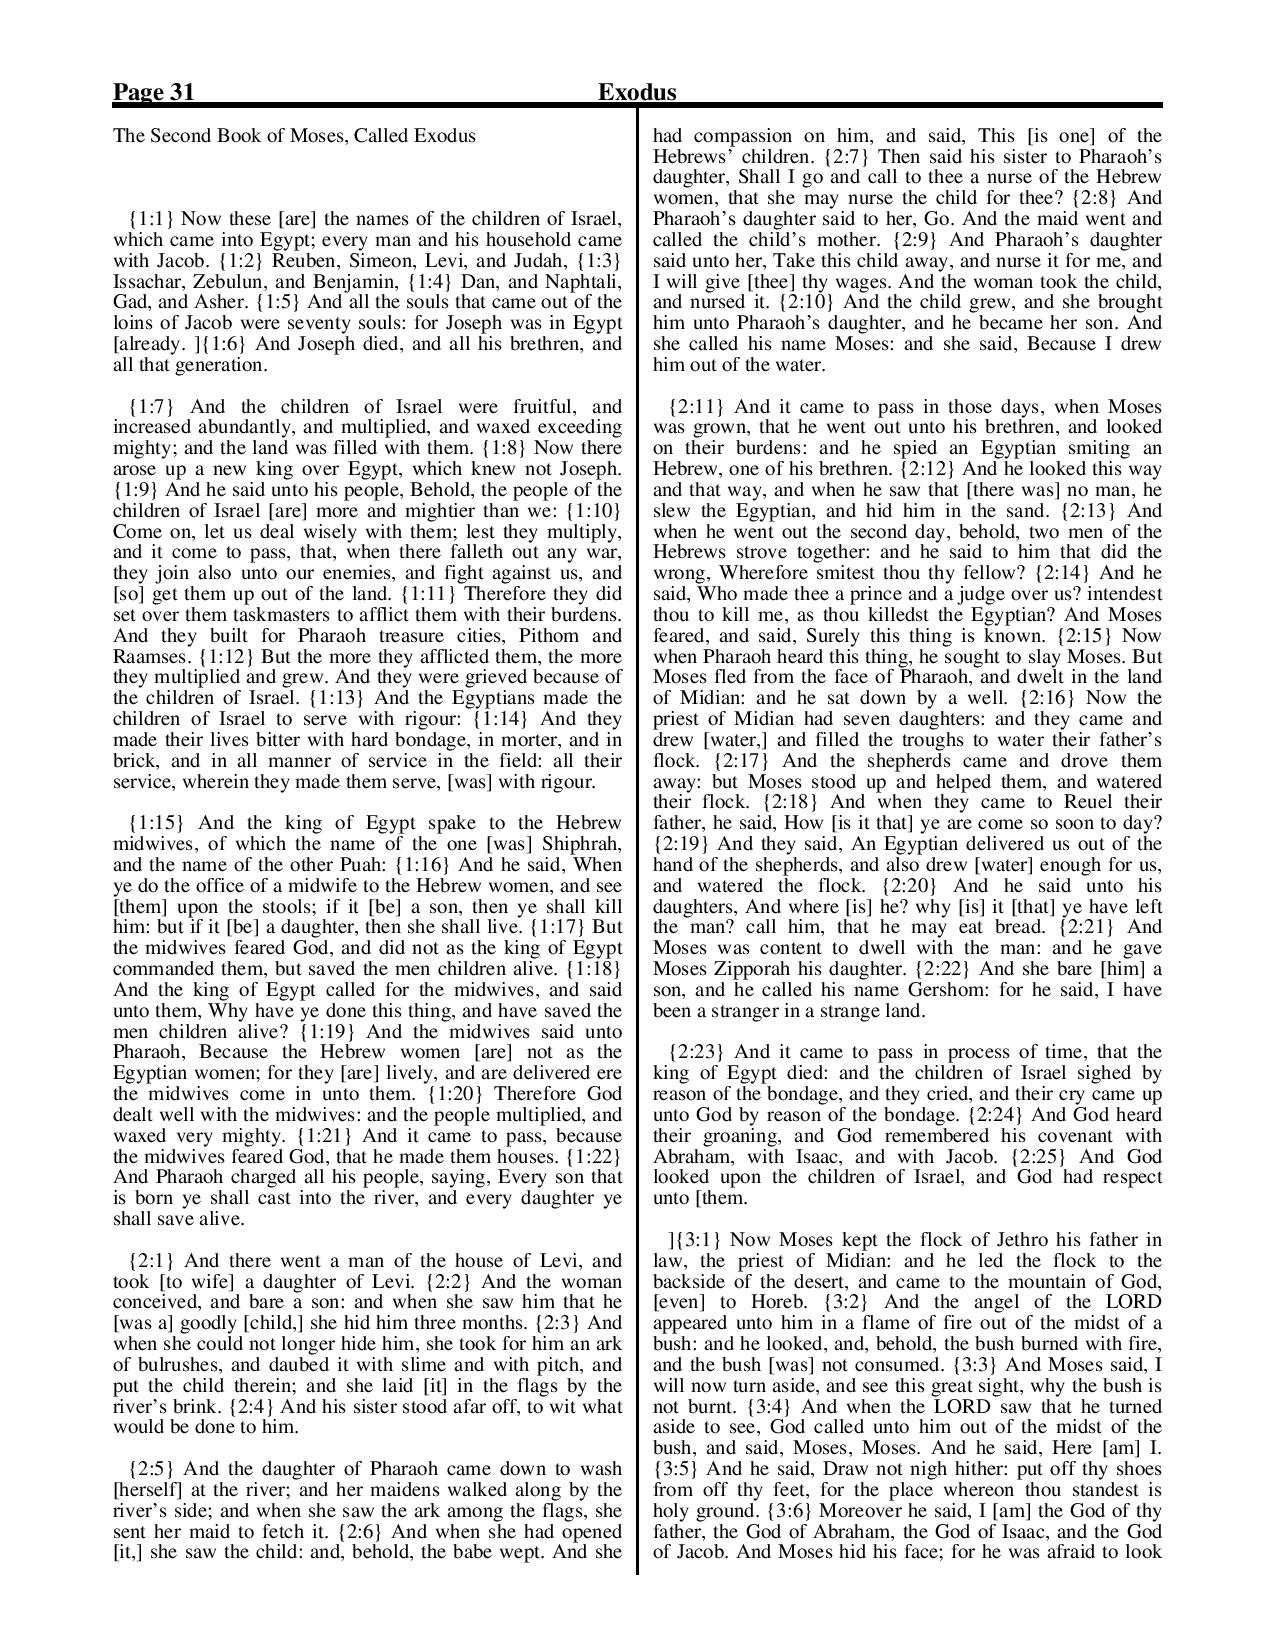 King-James-Bible-KJV-Bible-PDF-page-052